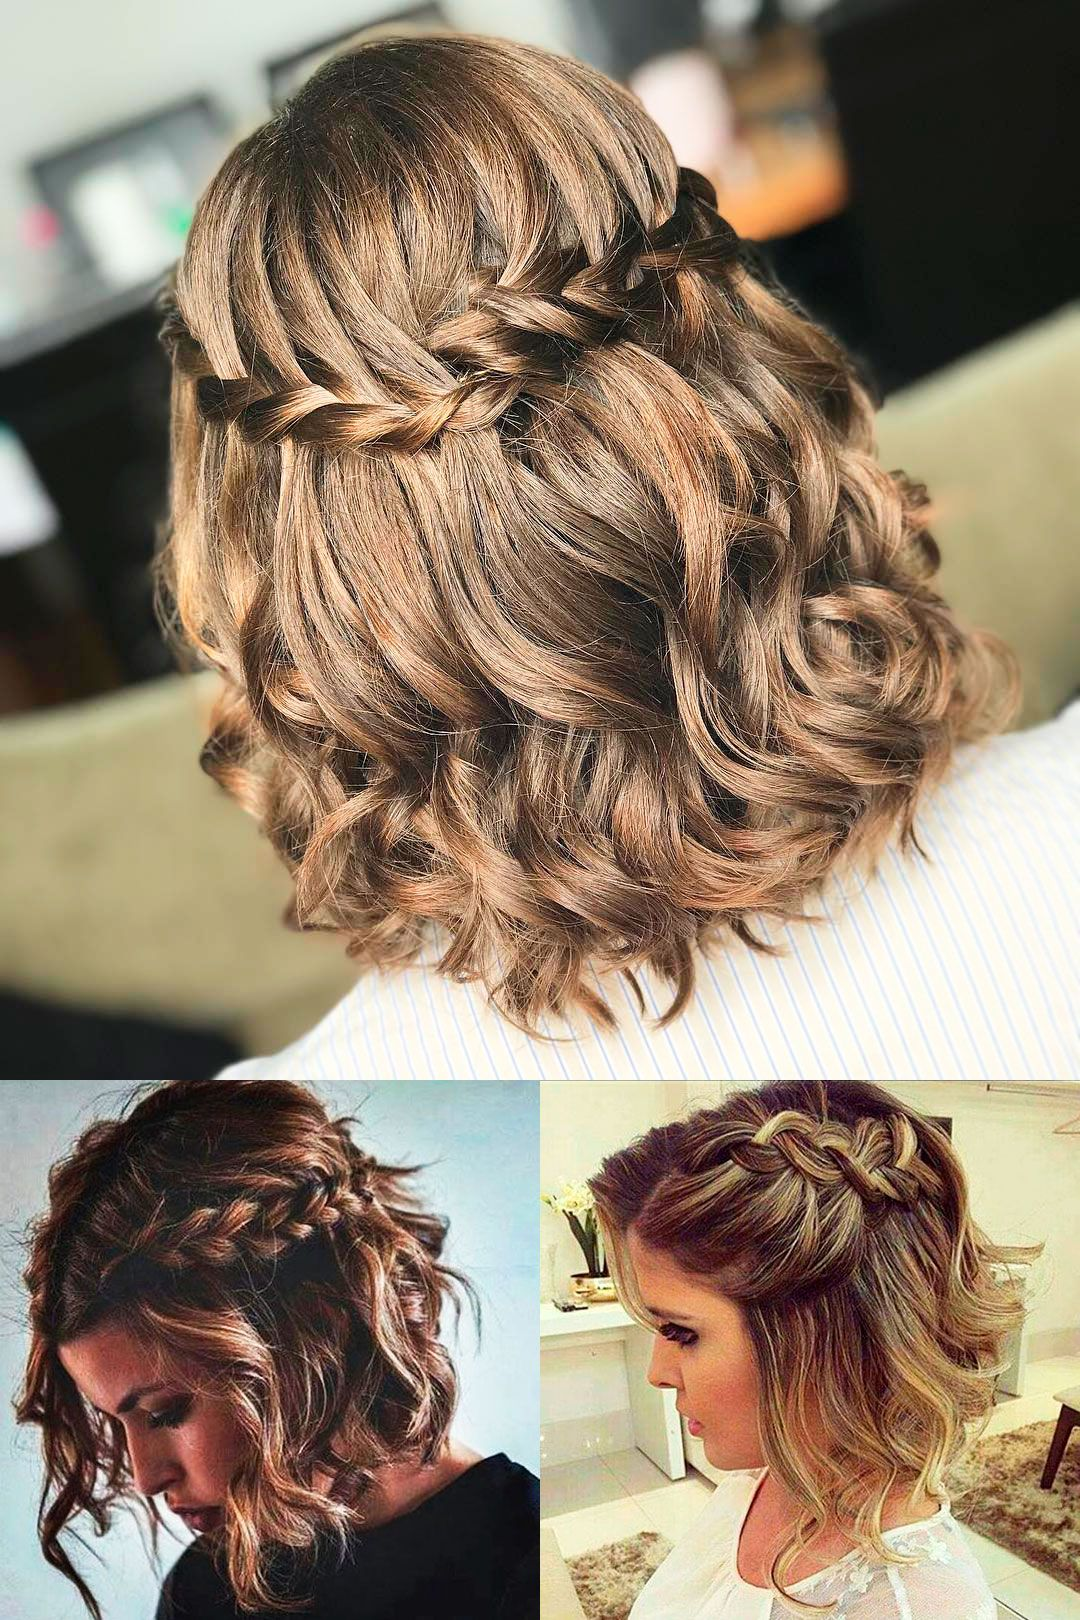 17 Most Attractive Short Curly Hairstyles For Women Loose Curls Short Hair Short Wedding Hair How To Curl Short Hair